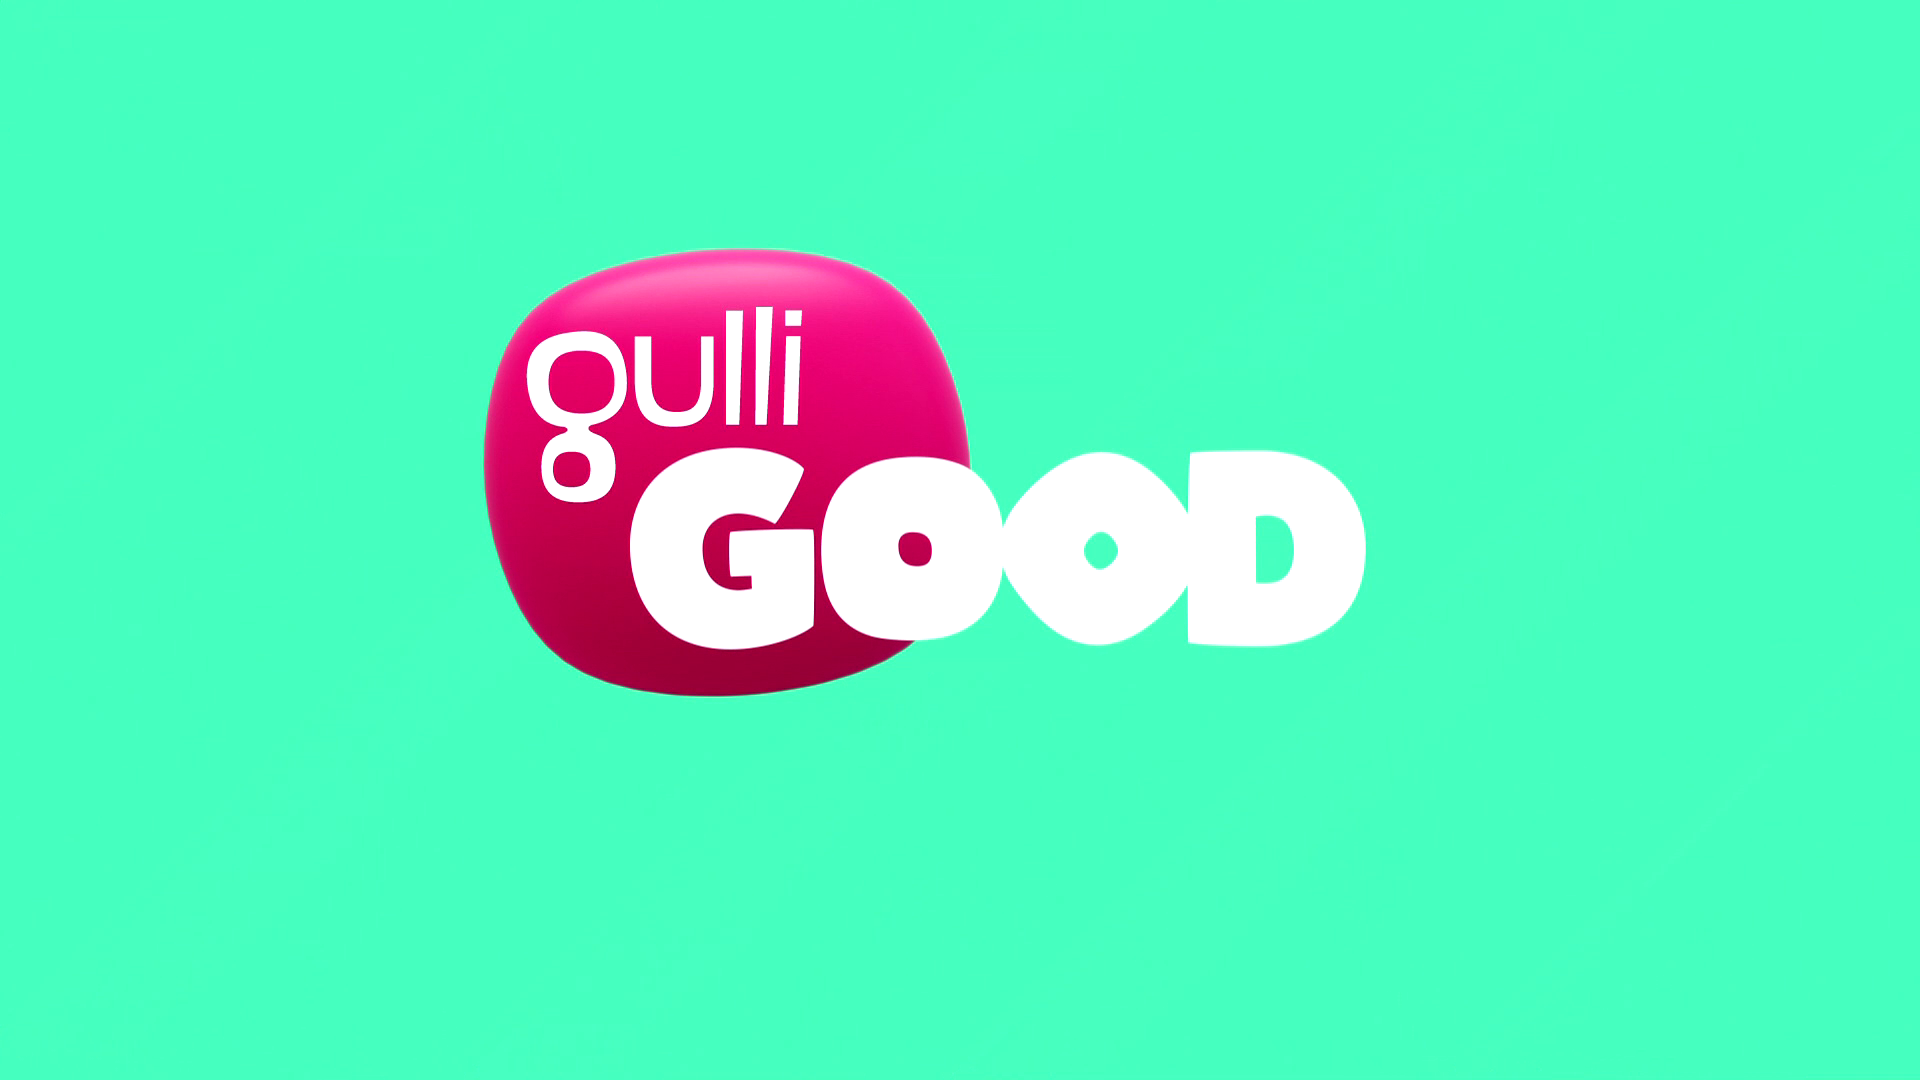 Vid U00e9o   Case Gulli Good Gulli  2017